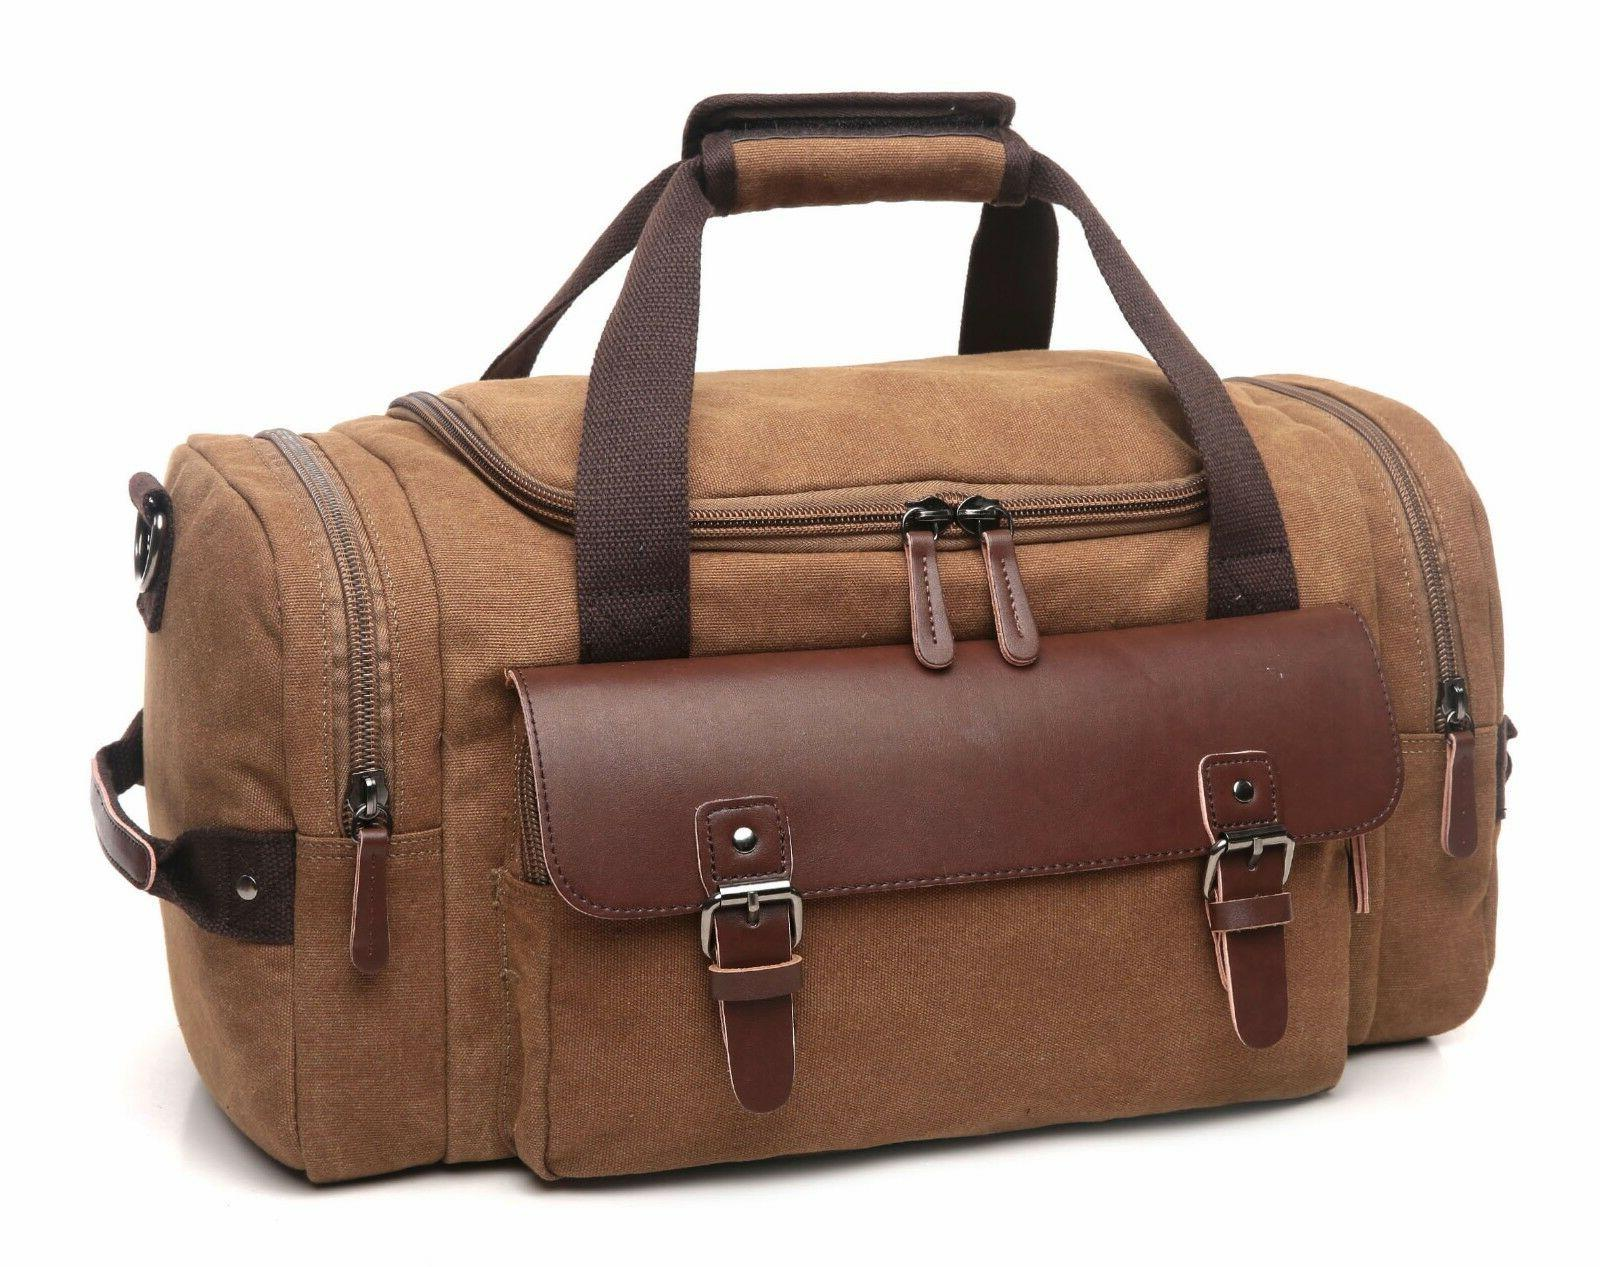 CrossLandy Travel Leather Bag Carry Luggage